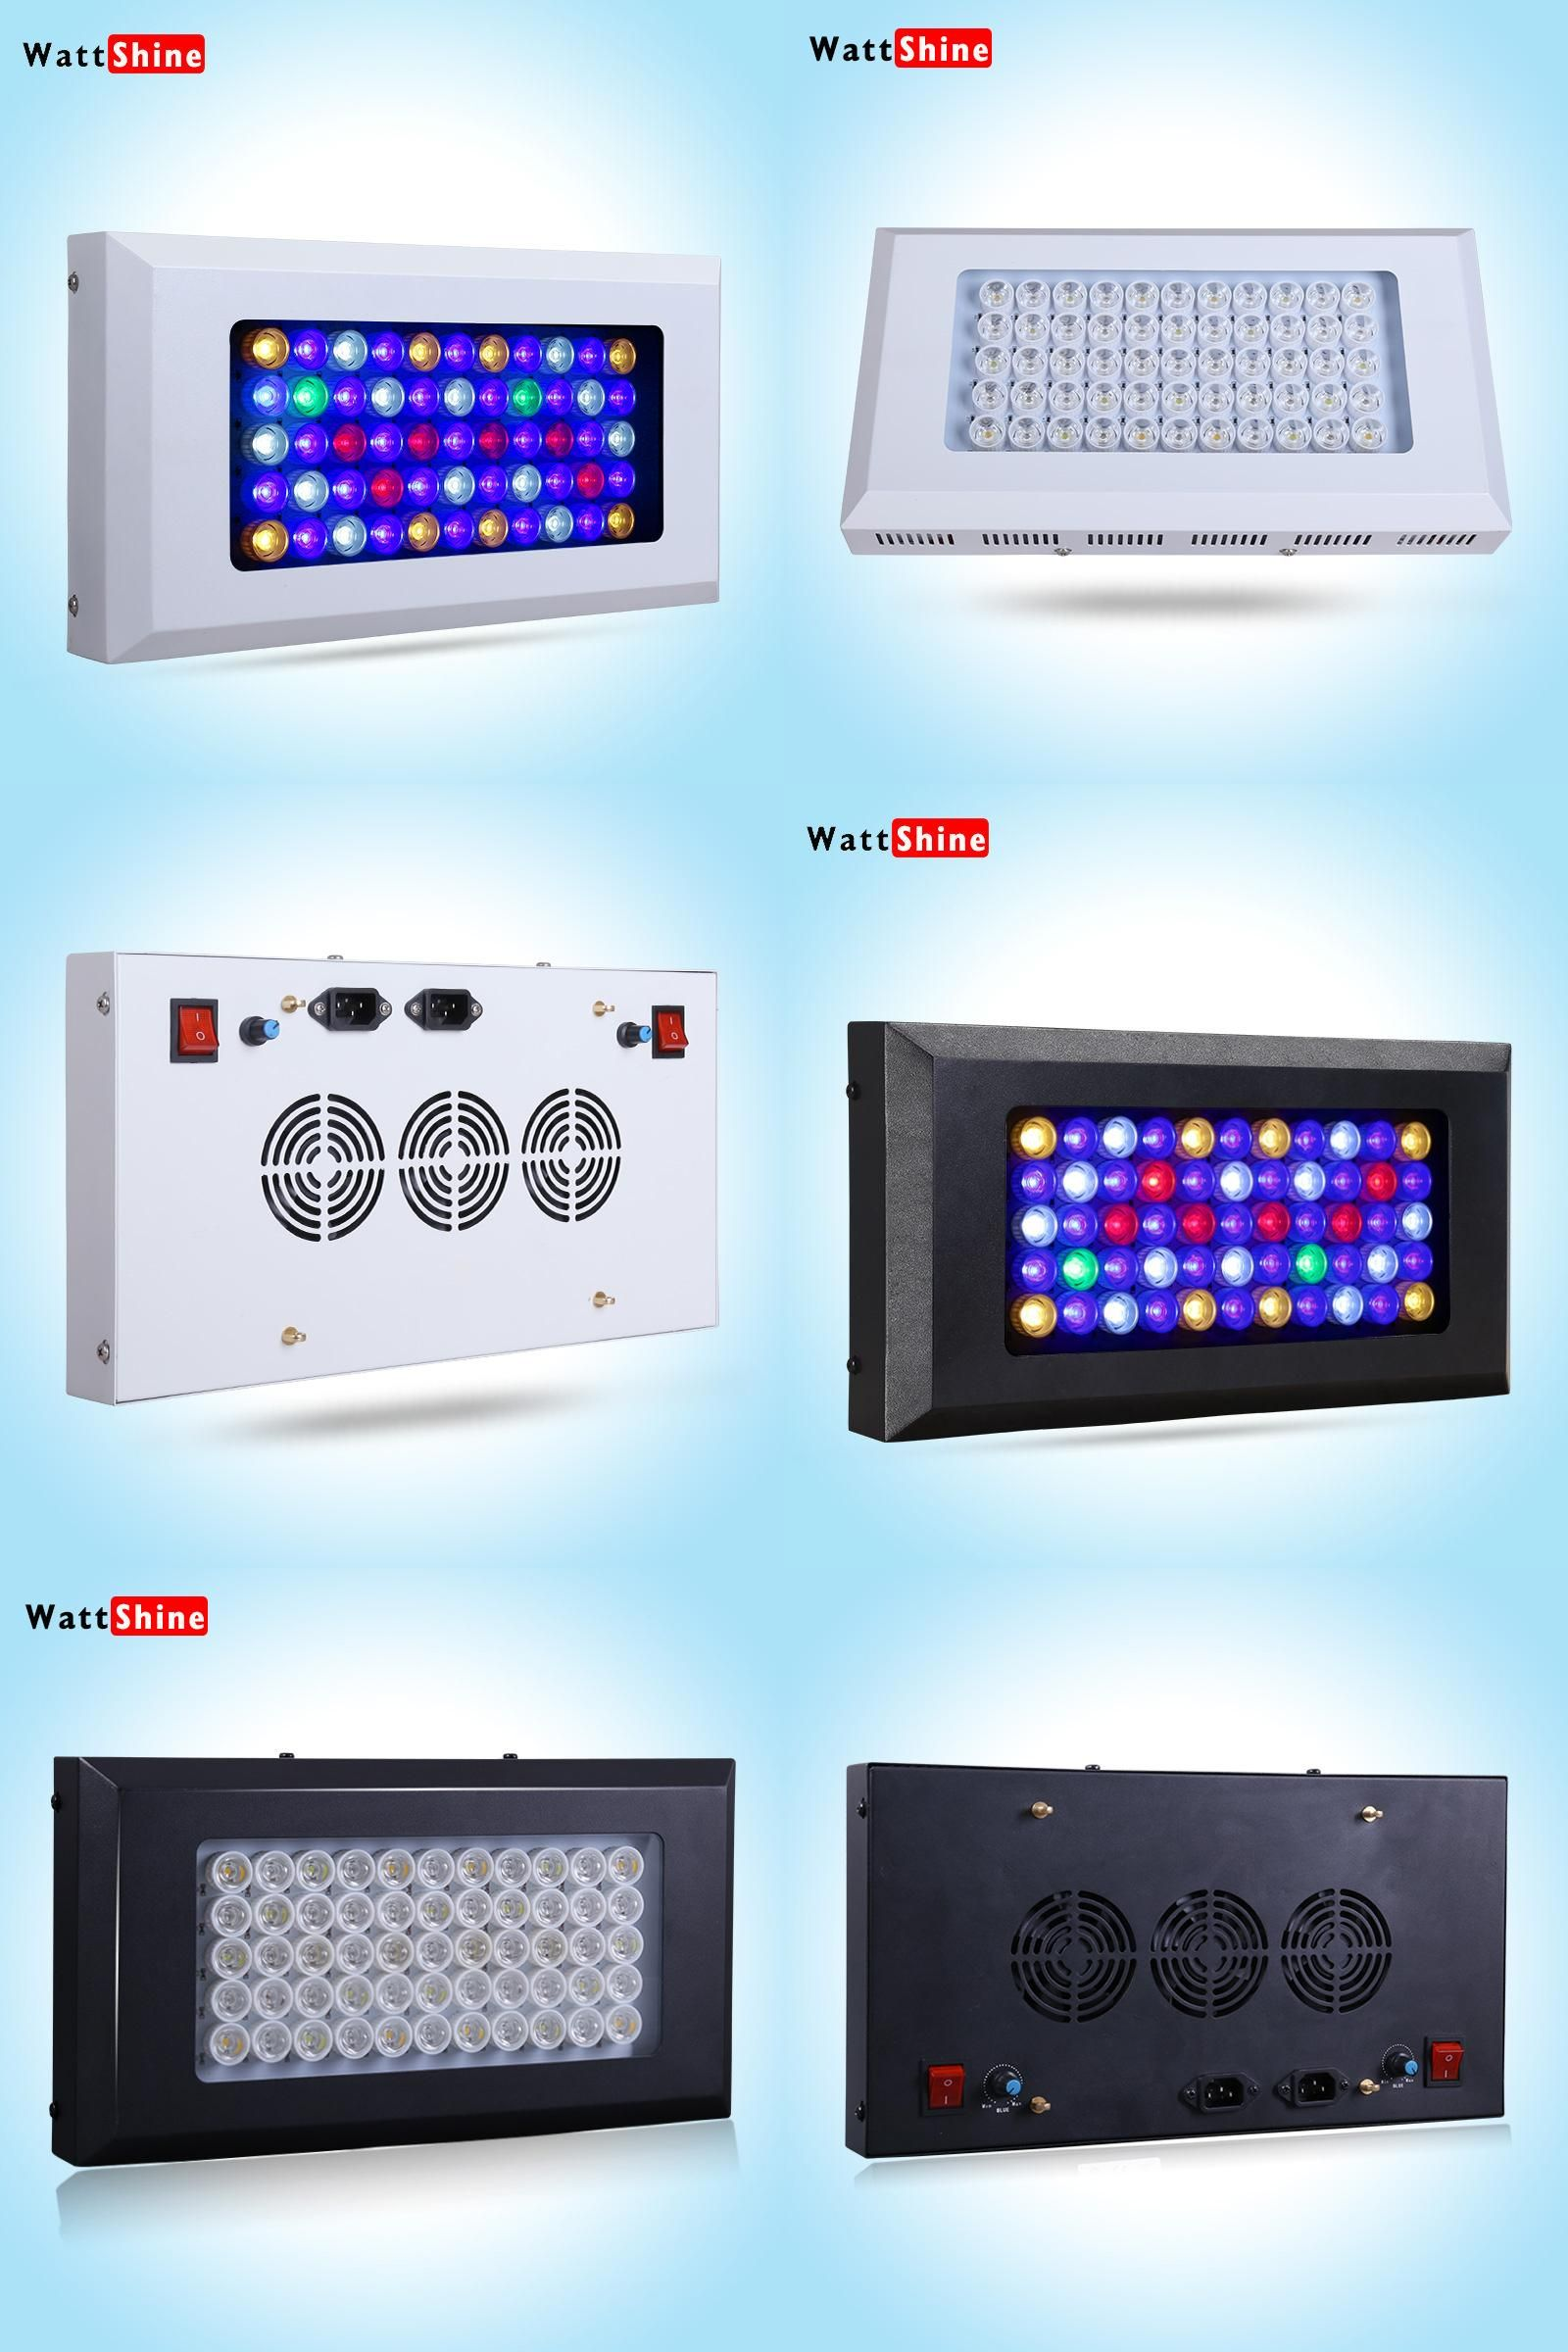 Visit to Buy] Dimmable LED Aquarium Light 165w 6 bands spectrum